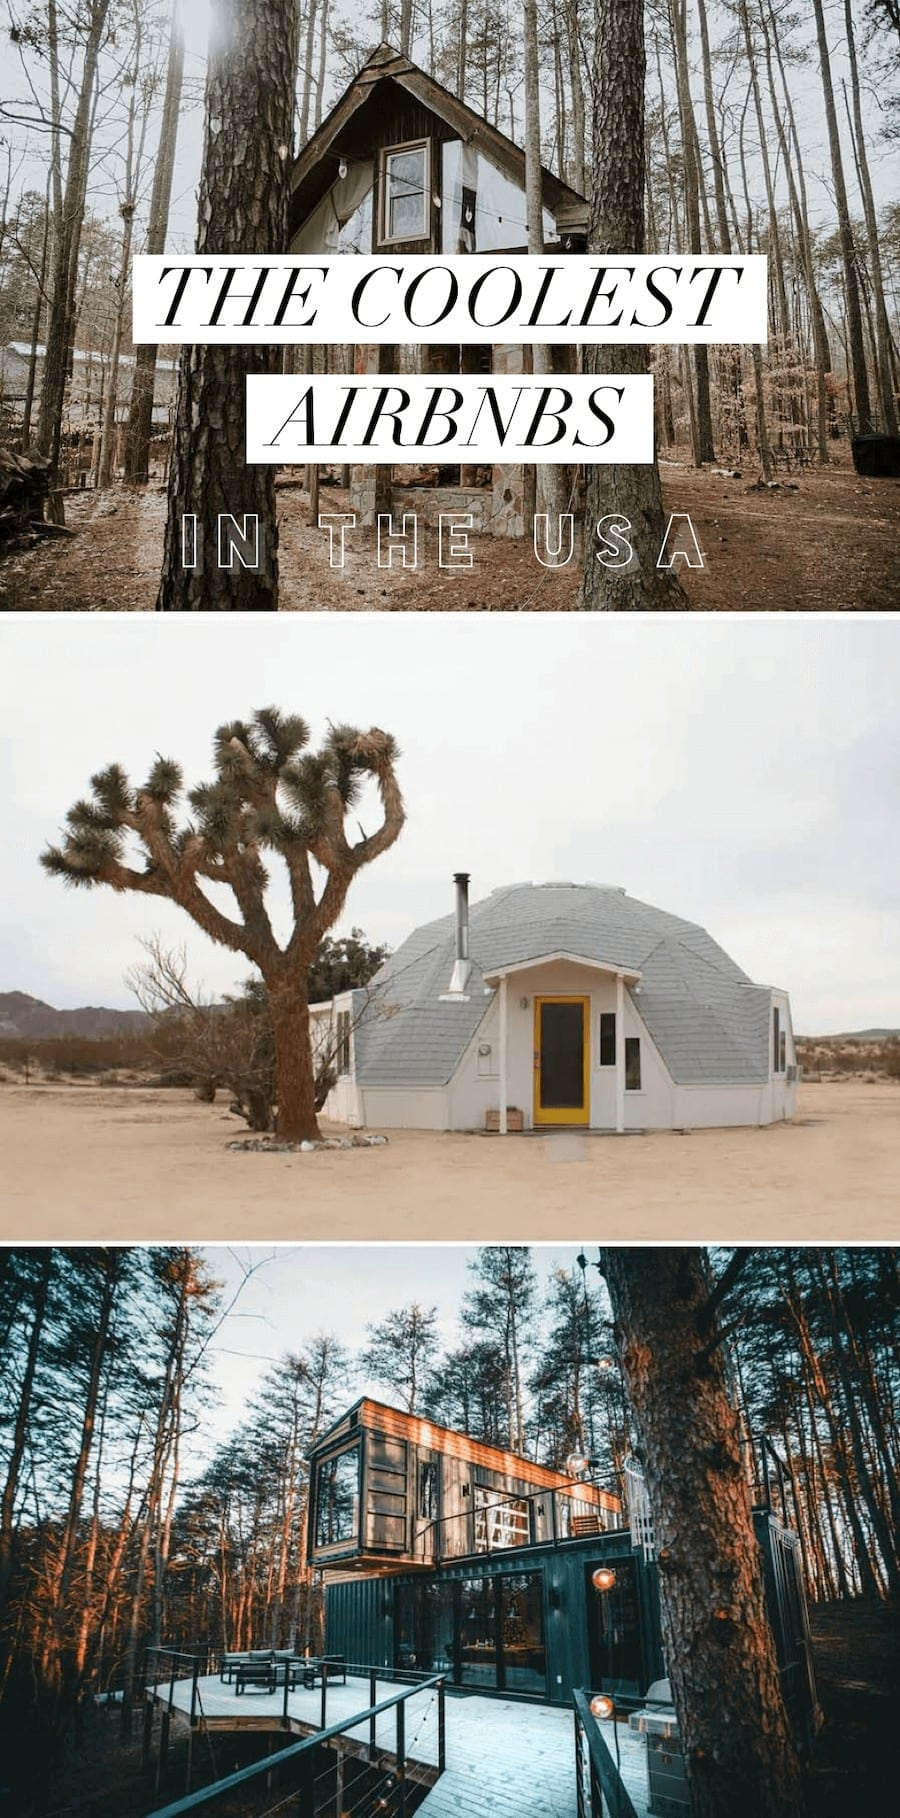 Desert domes, treehouses and more of the best Airbnbs in the USA